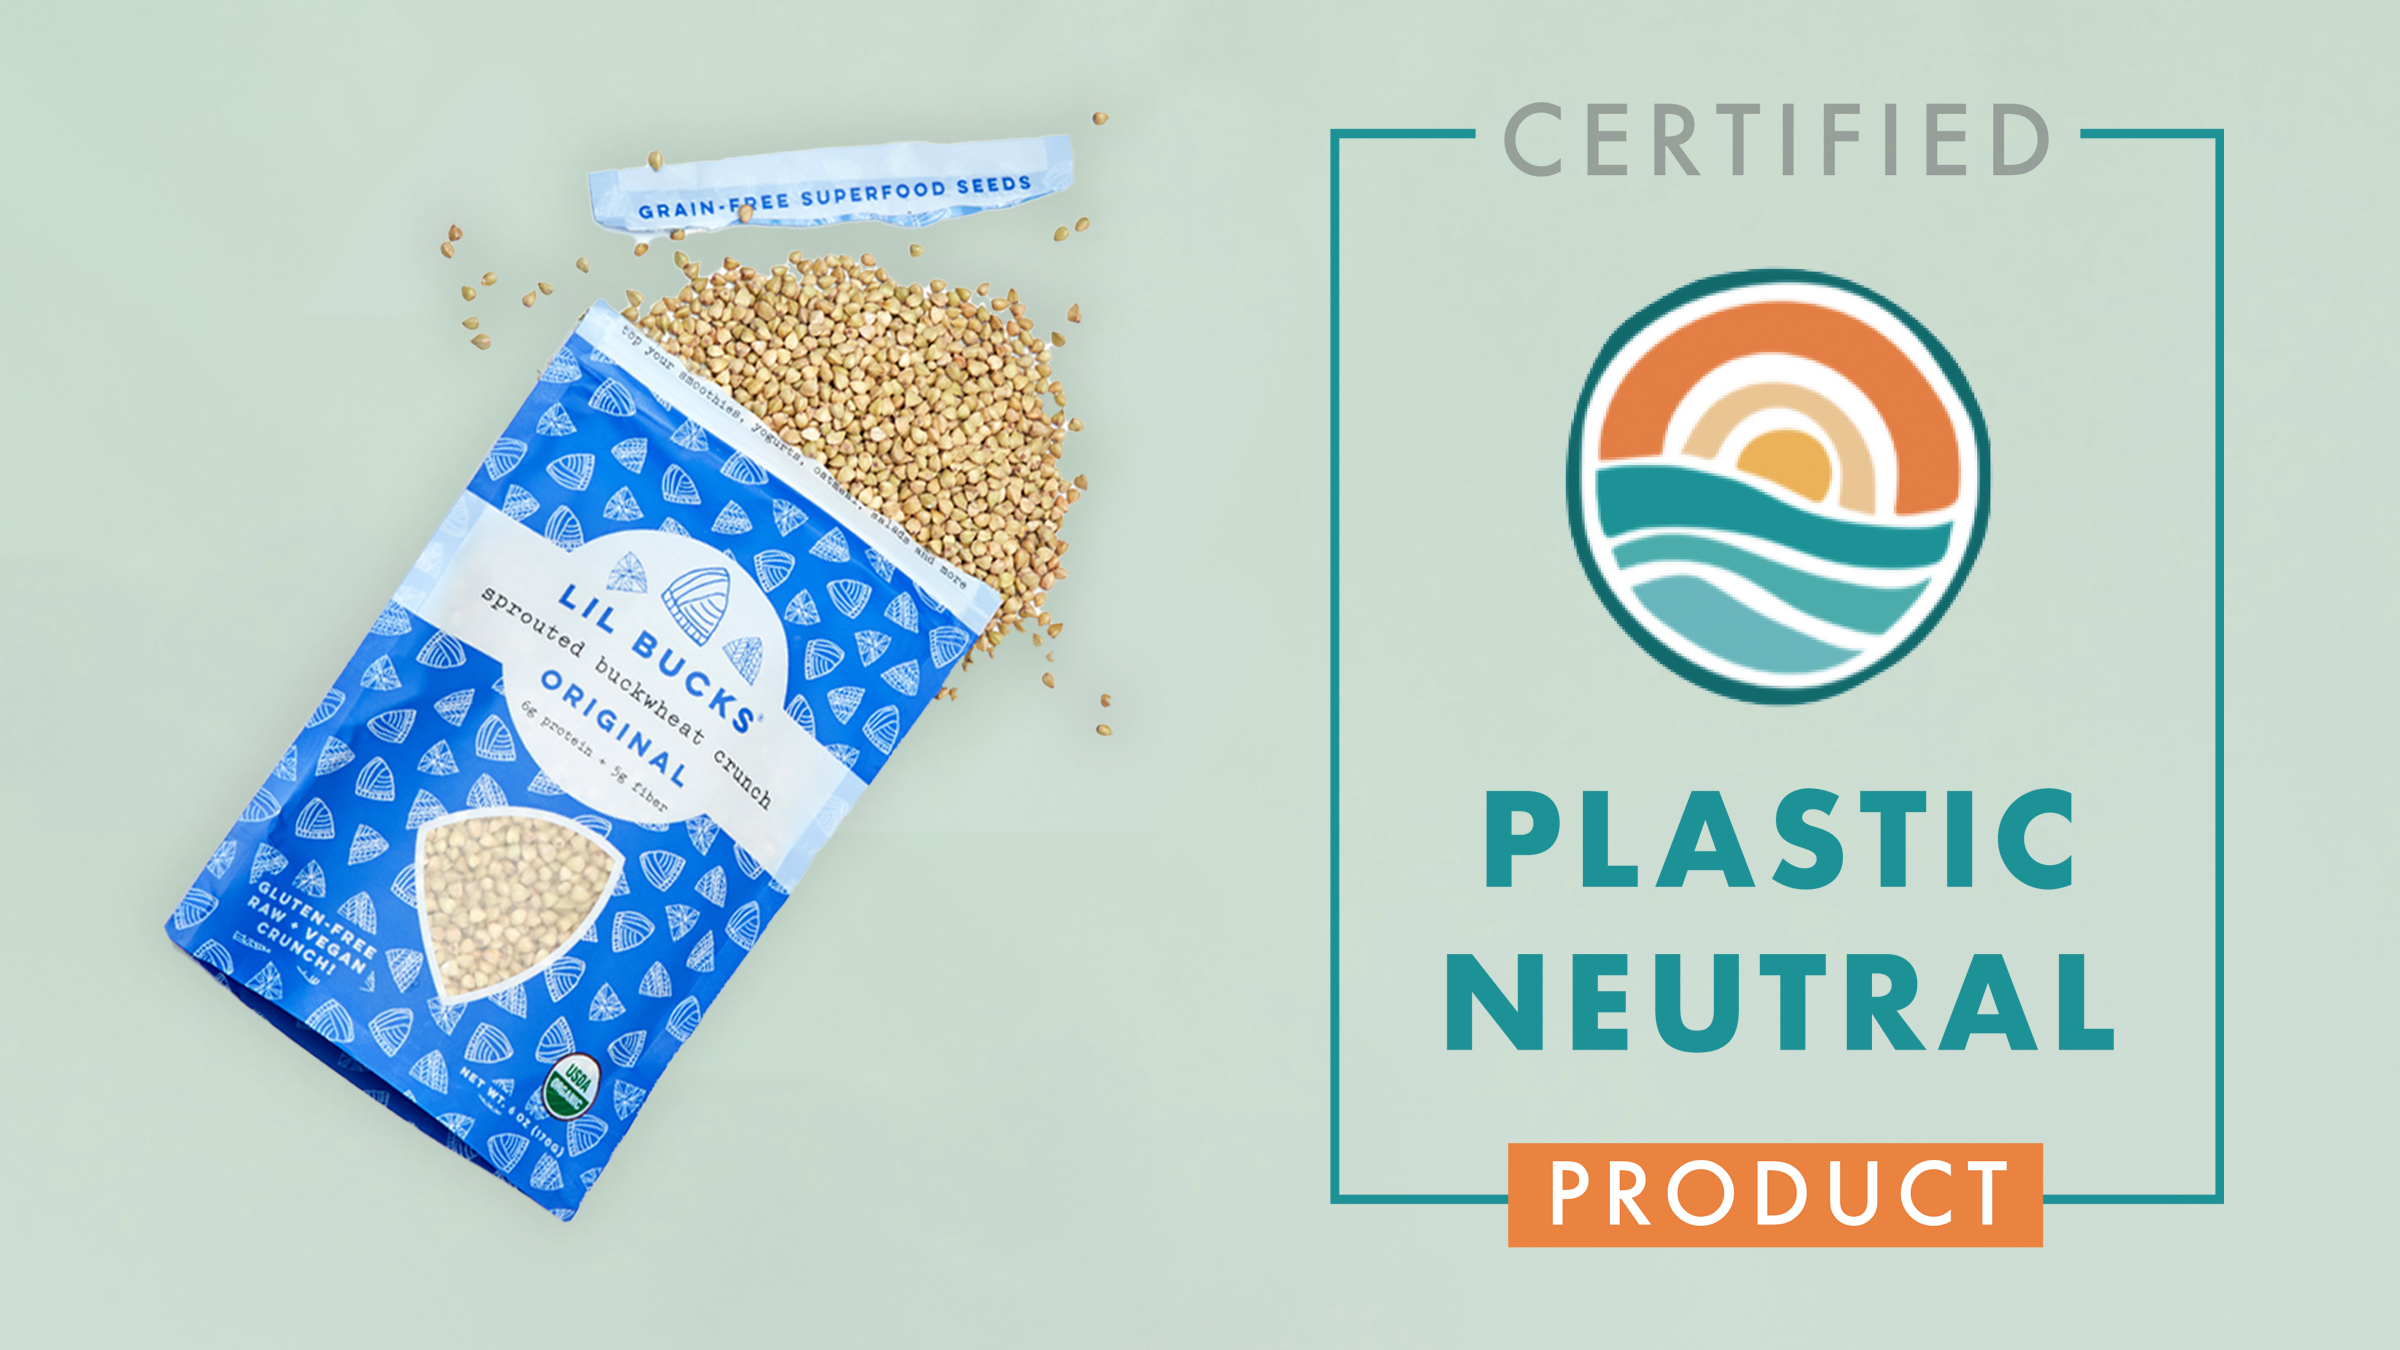 Lil Bucks is Officially Certified Plastic Neutral!